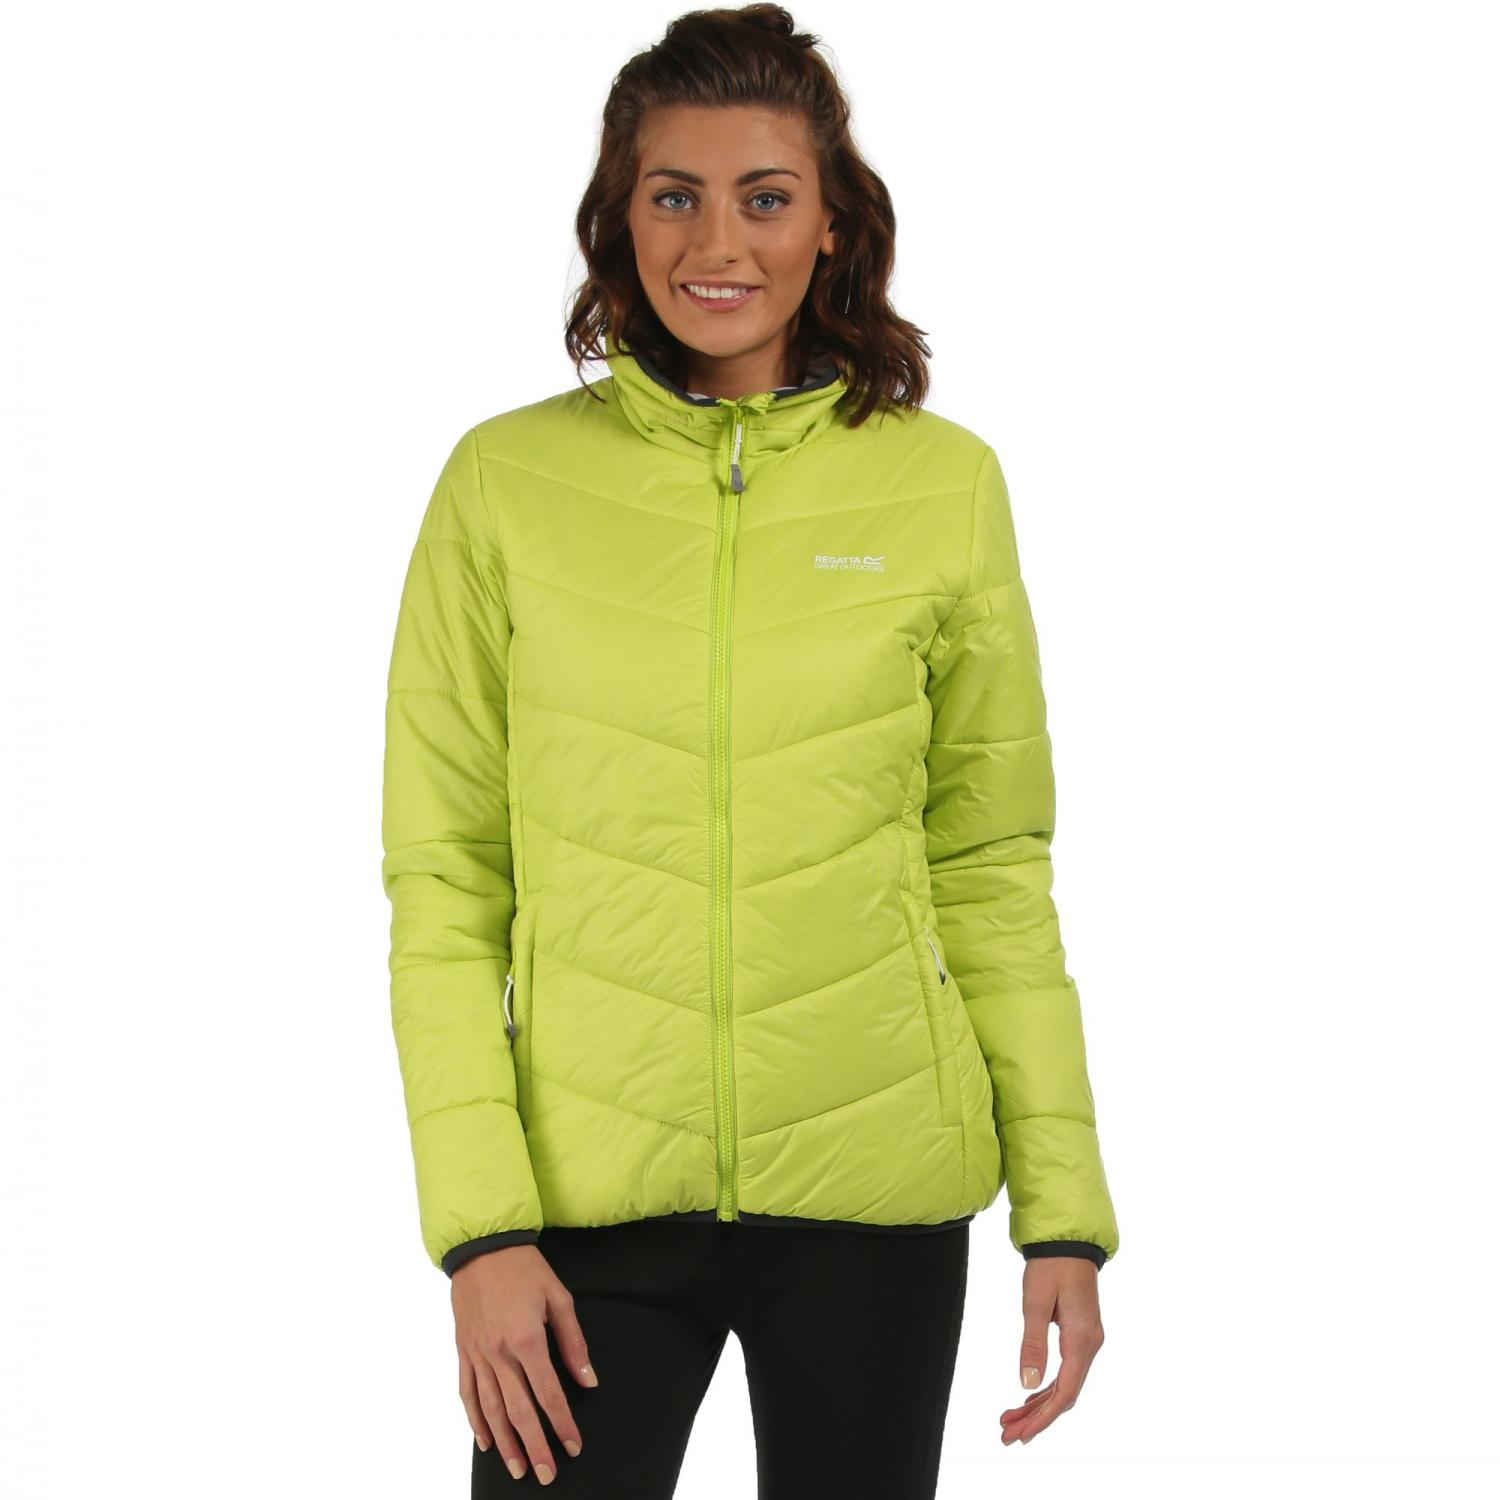 Womens Icebound Jacket Lime Zest